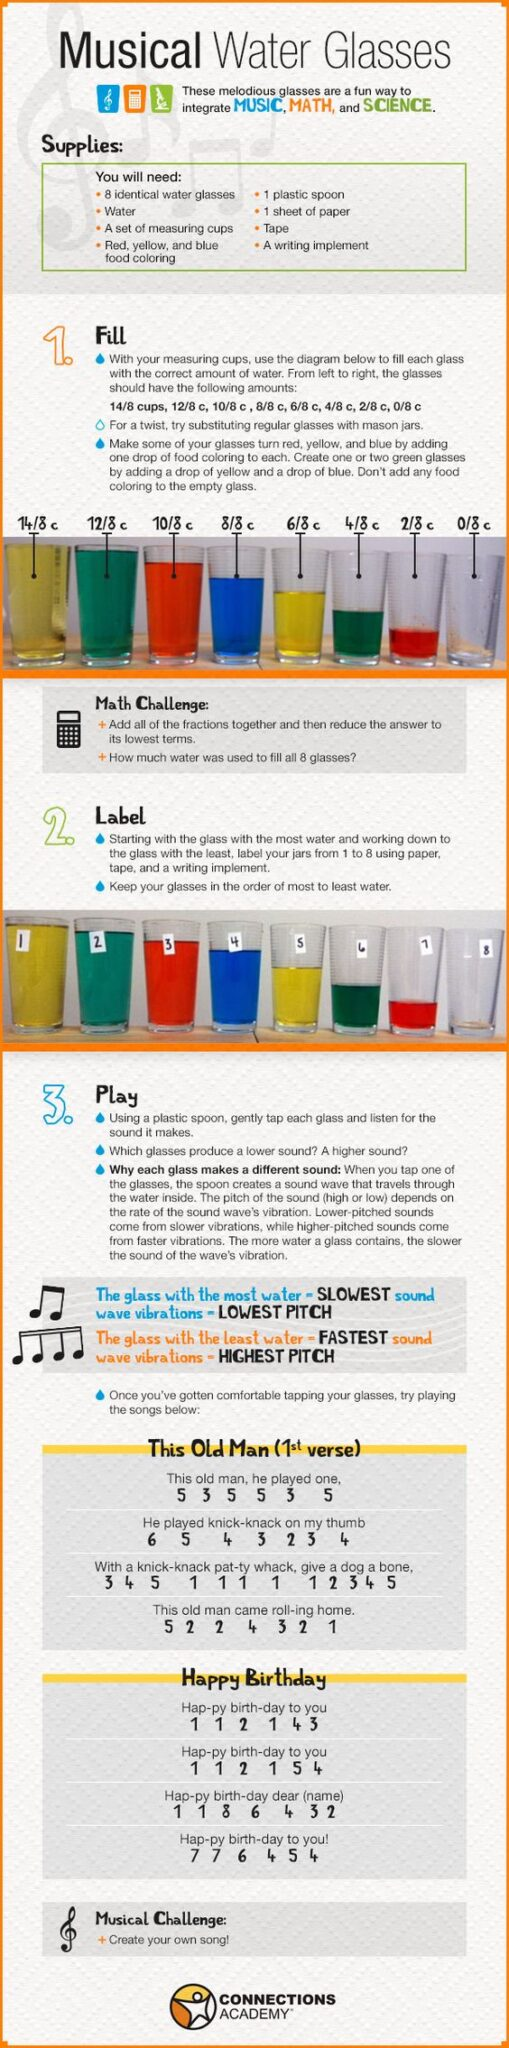 Here is everything you need to know to set up a water glass concert at home. Music included! STEM and STEAM activities like this one are perfect for engaging children's natural curiosity. Here is a list of rich activities for toddlers, preschoolers and kids of all ages. #howweelearn #stem #steam #scienceforkids #learningactivities